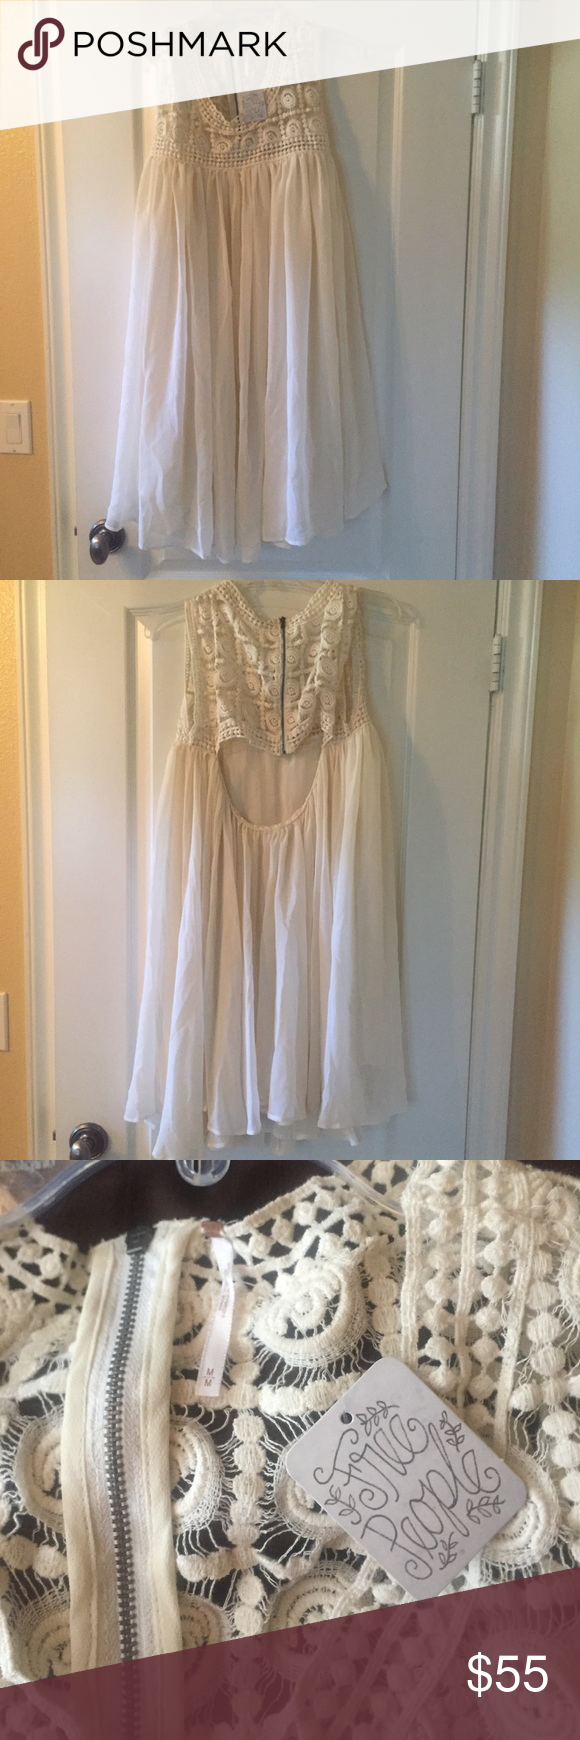 Free people BOHO off-white lace/tool flowy dress NWT!!!!! Never before worn. In perfect condition! This gorgeous, flowy white free people dress is perfect for the summer time. It is so light weight and effortless. Wear it with a pair of gladiators for an effortless look, of pair it with strappy heels to dress it up and look chic. A little bit of an open back; so flattering and perfect for any occasion! Free People Dresses Asymmetrical